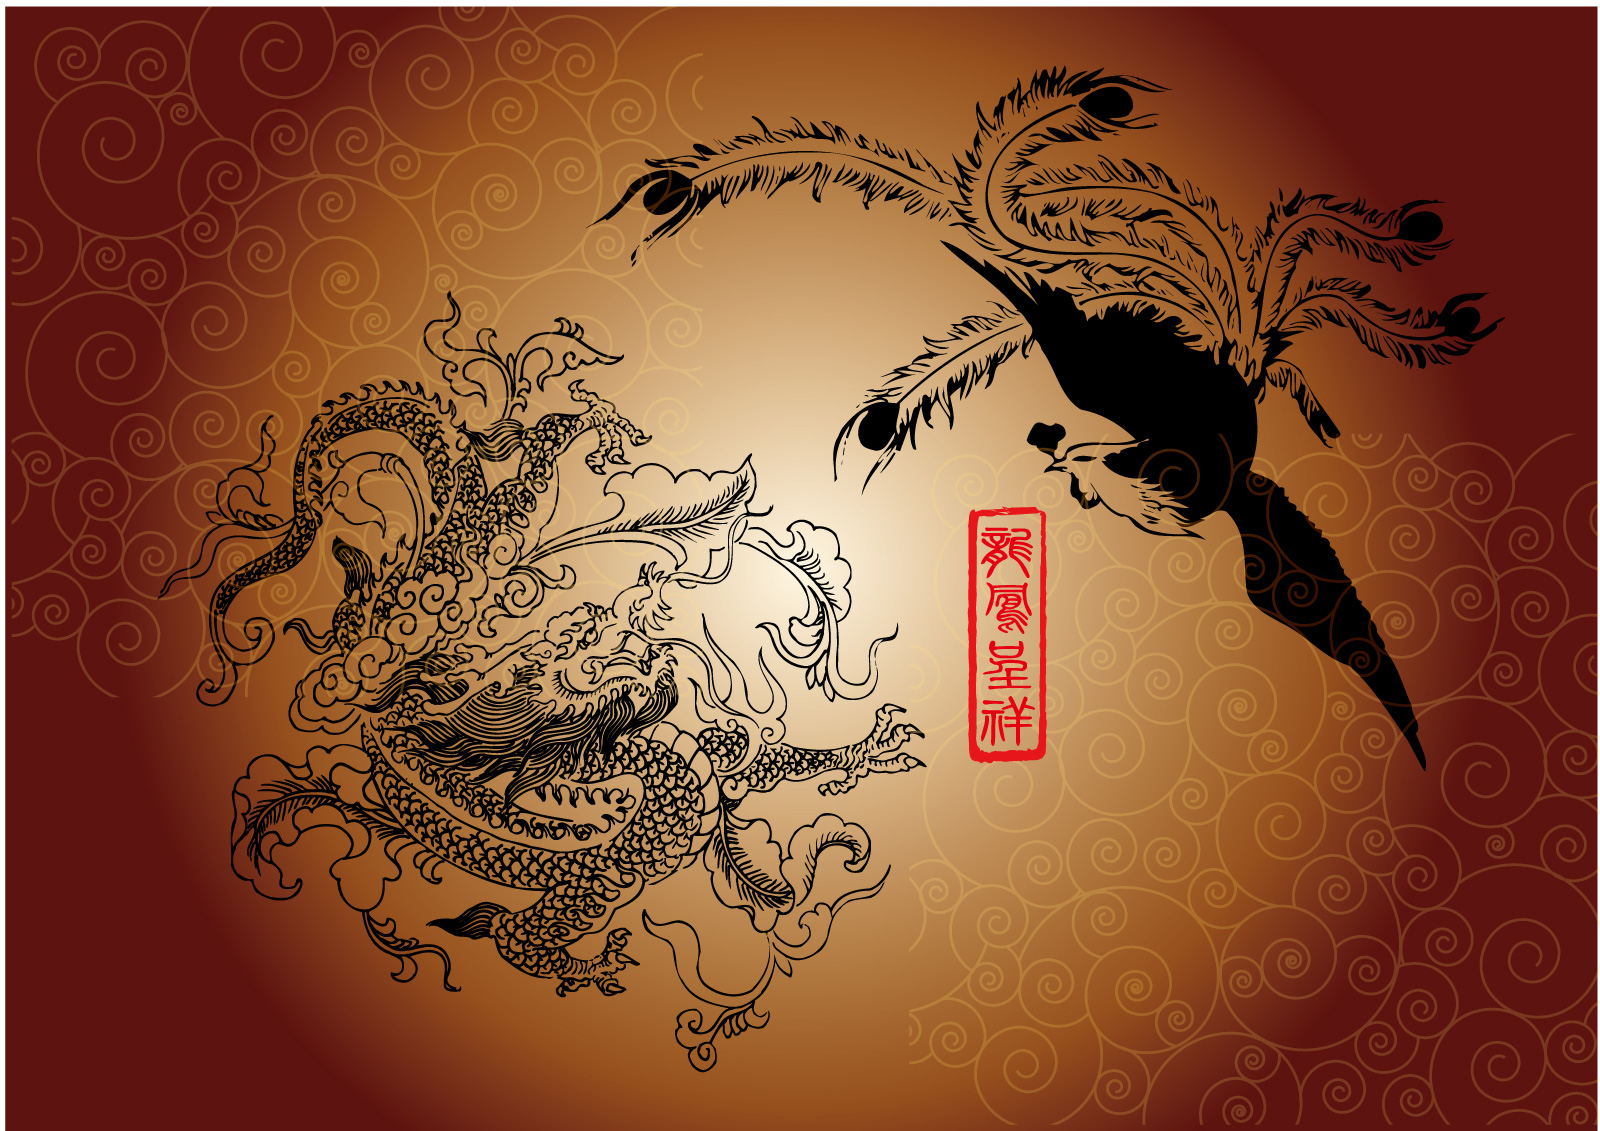 chinesefontdesign.com 2017 03 14 20 36 25 Classic loong and phoenix vector drawing pictures   China Illustrations Vectors AI ESP Phoenix Vectors phoenix ai loong vectors loong ai